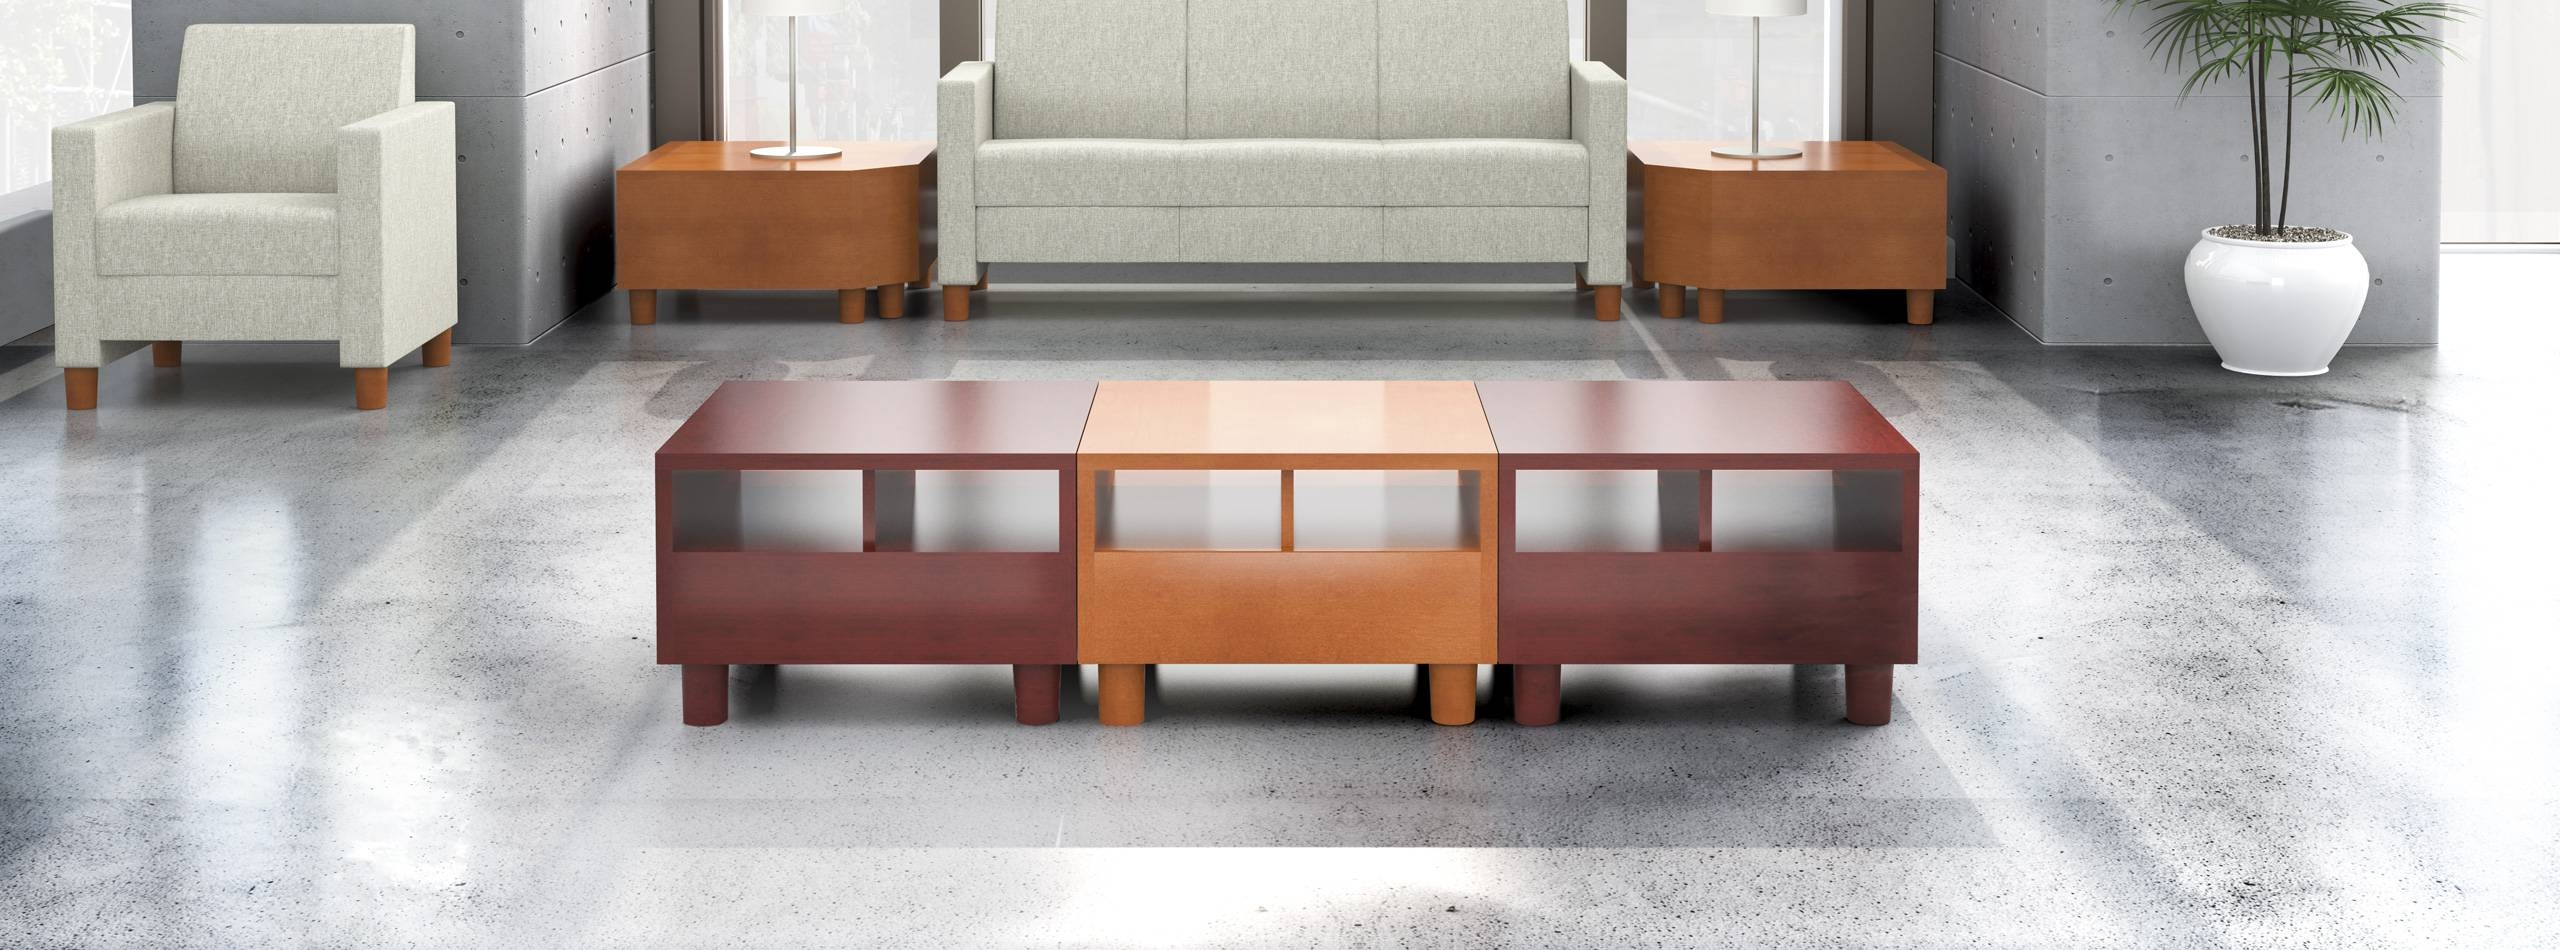 Mezzanine | Cube Tables | Corner, Coffee & End Tables | Ideon regarding Corner Coffee Tables (Image 23 of 30)